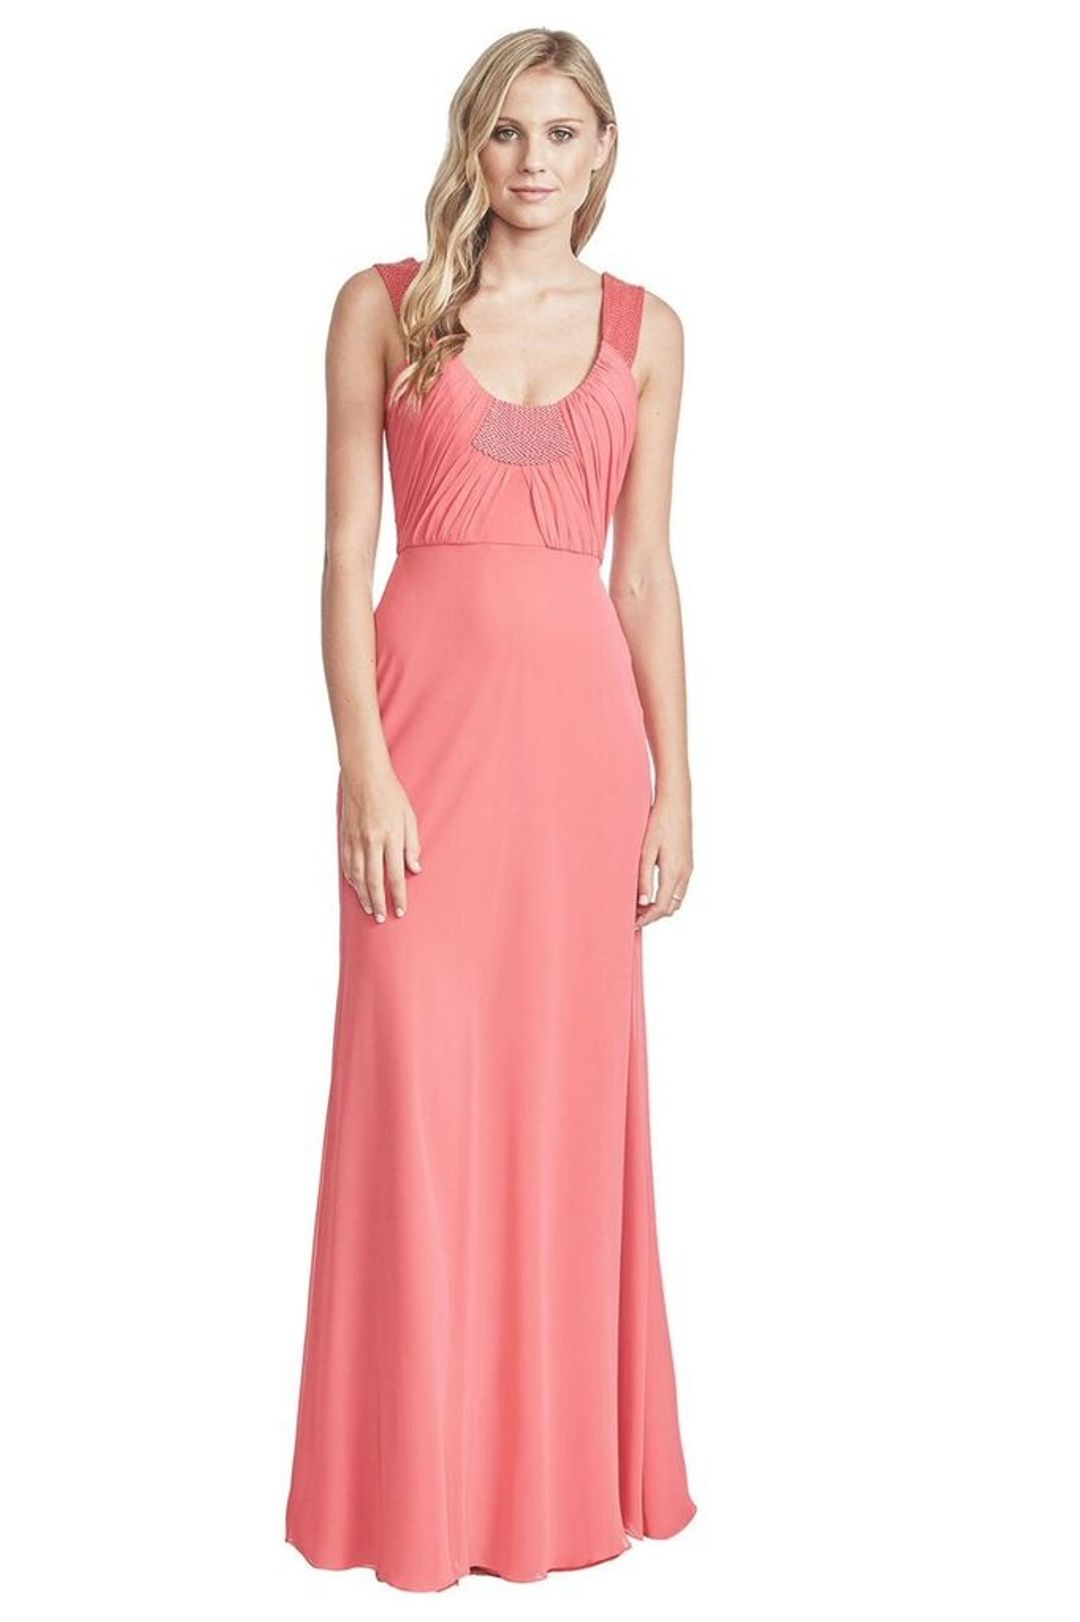 George - Gwen Gown - Pink - Front